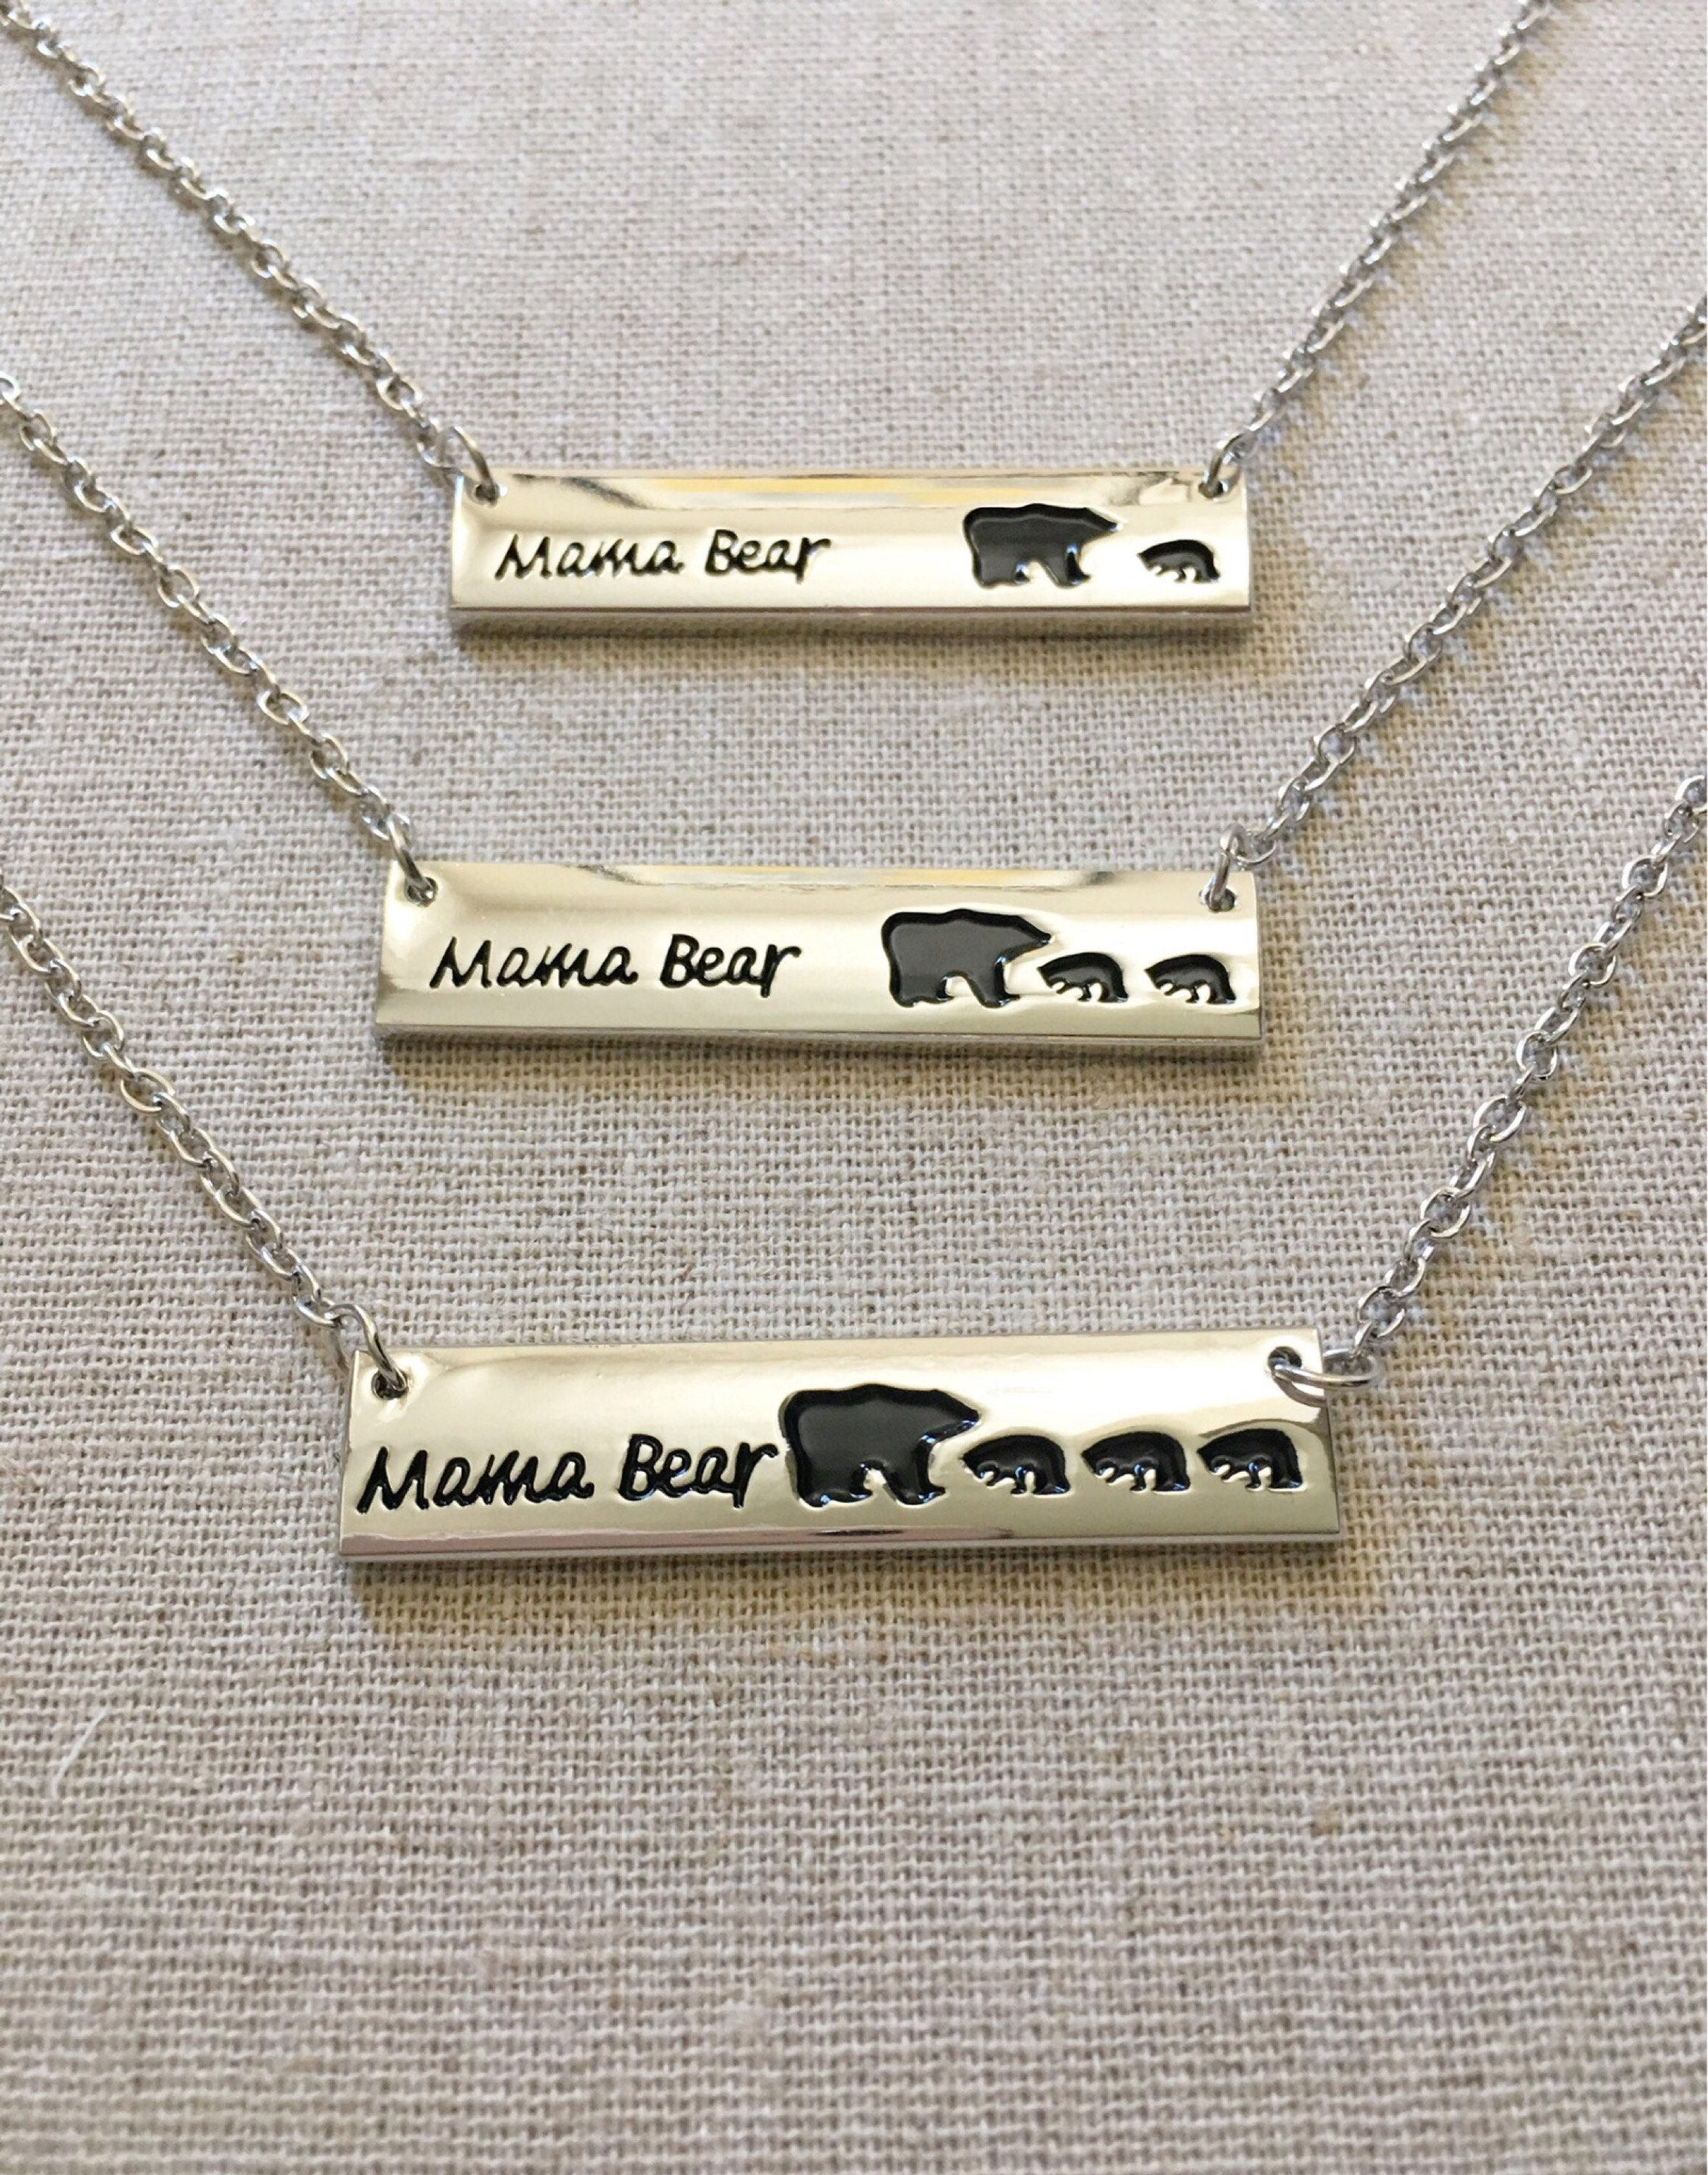 mignon bear products mbn necklace mama naomi